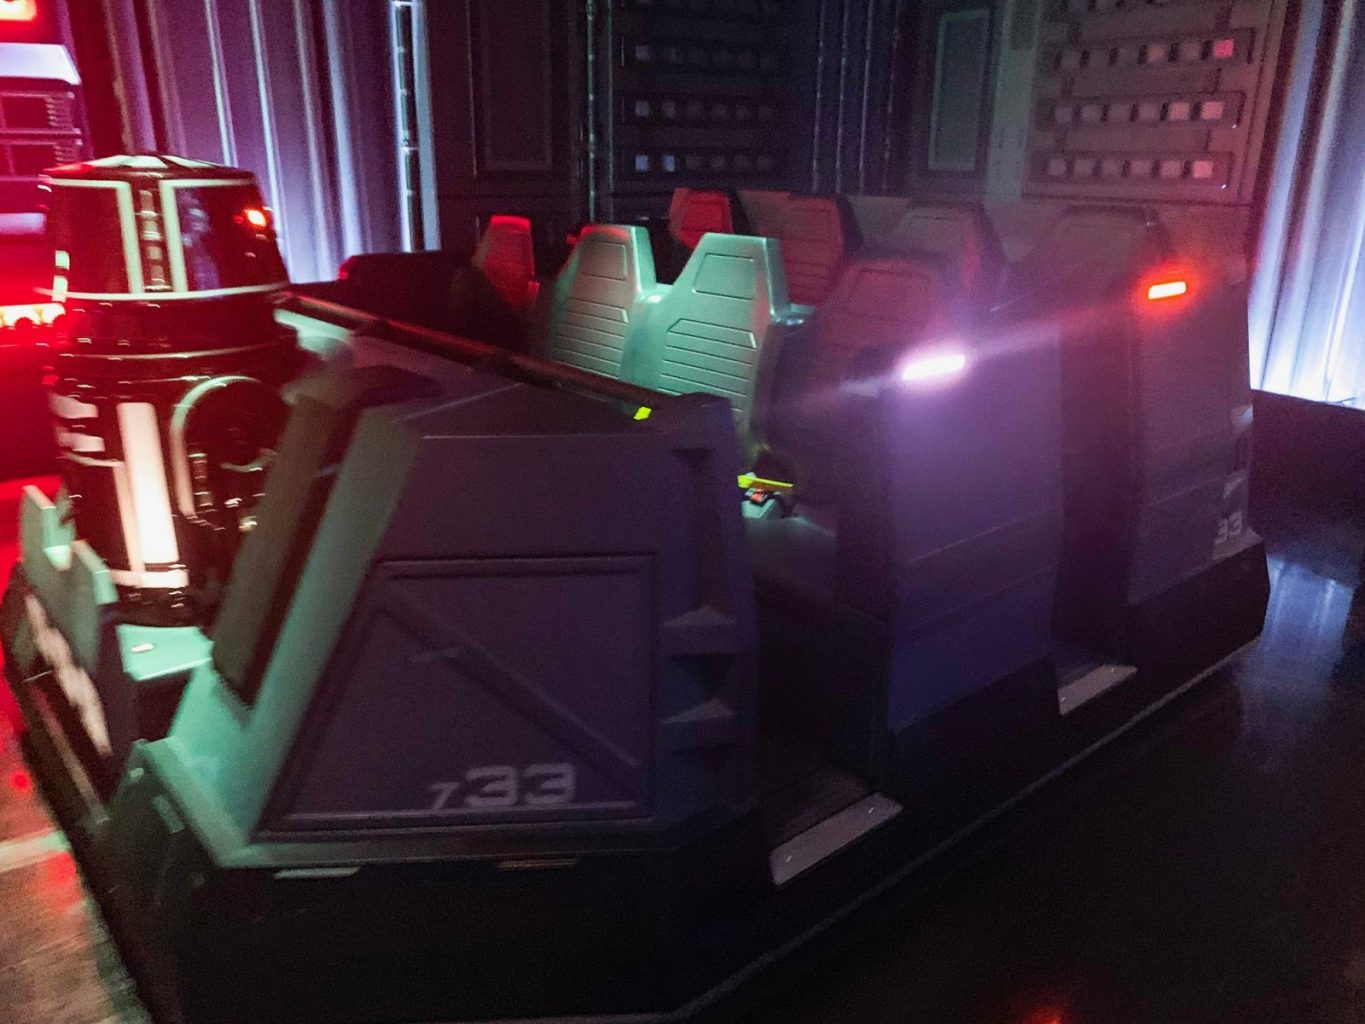 The Star Wars Rise Of The Resistance ride vehicle